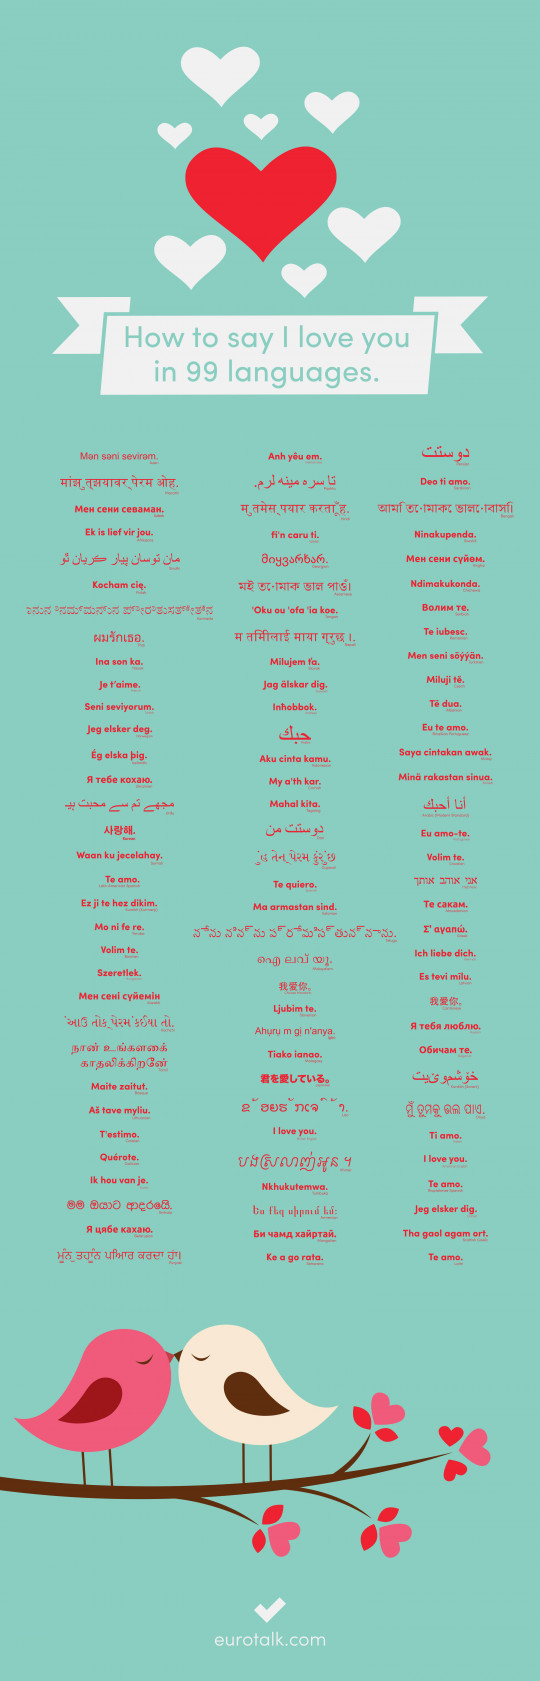 How To Say I Love You In 99 Languages